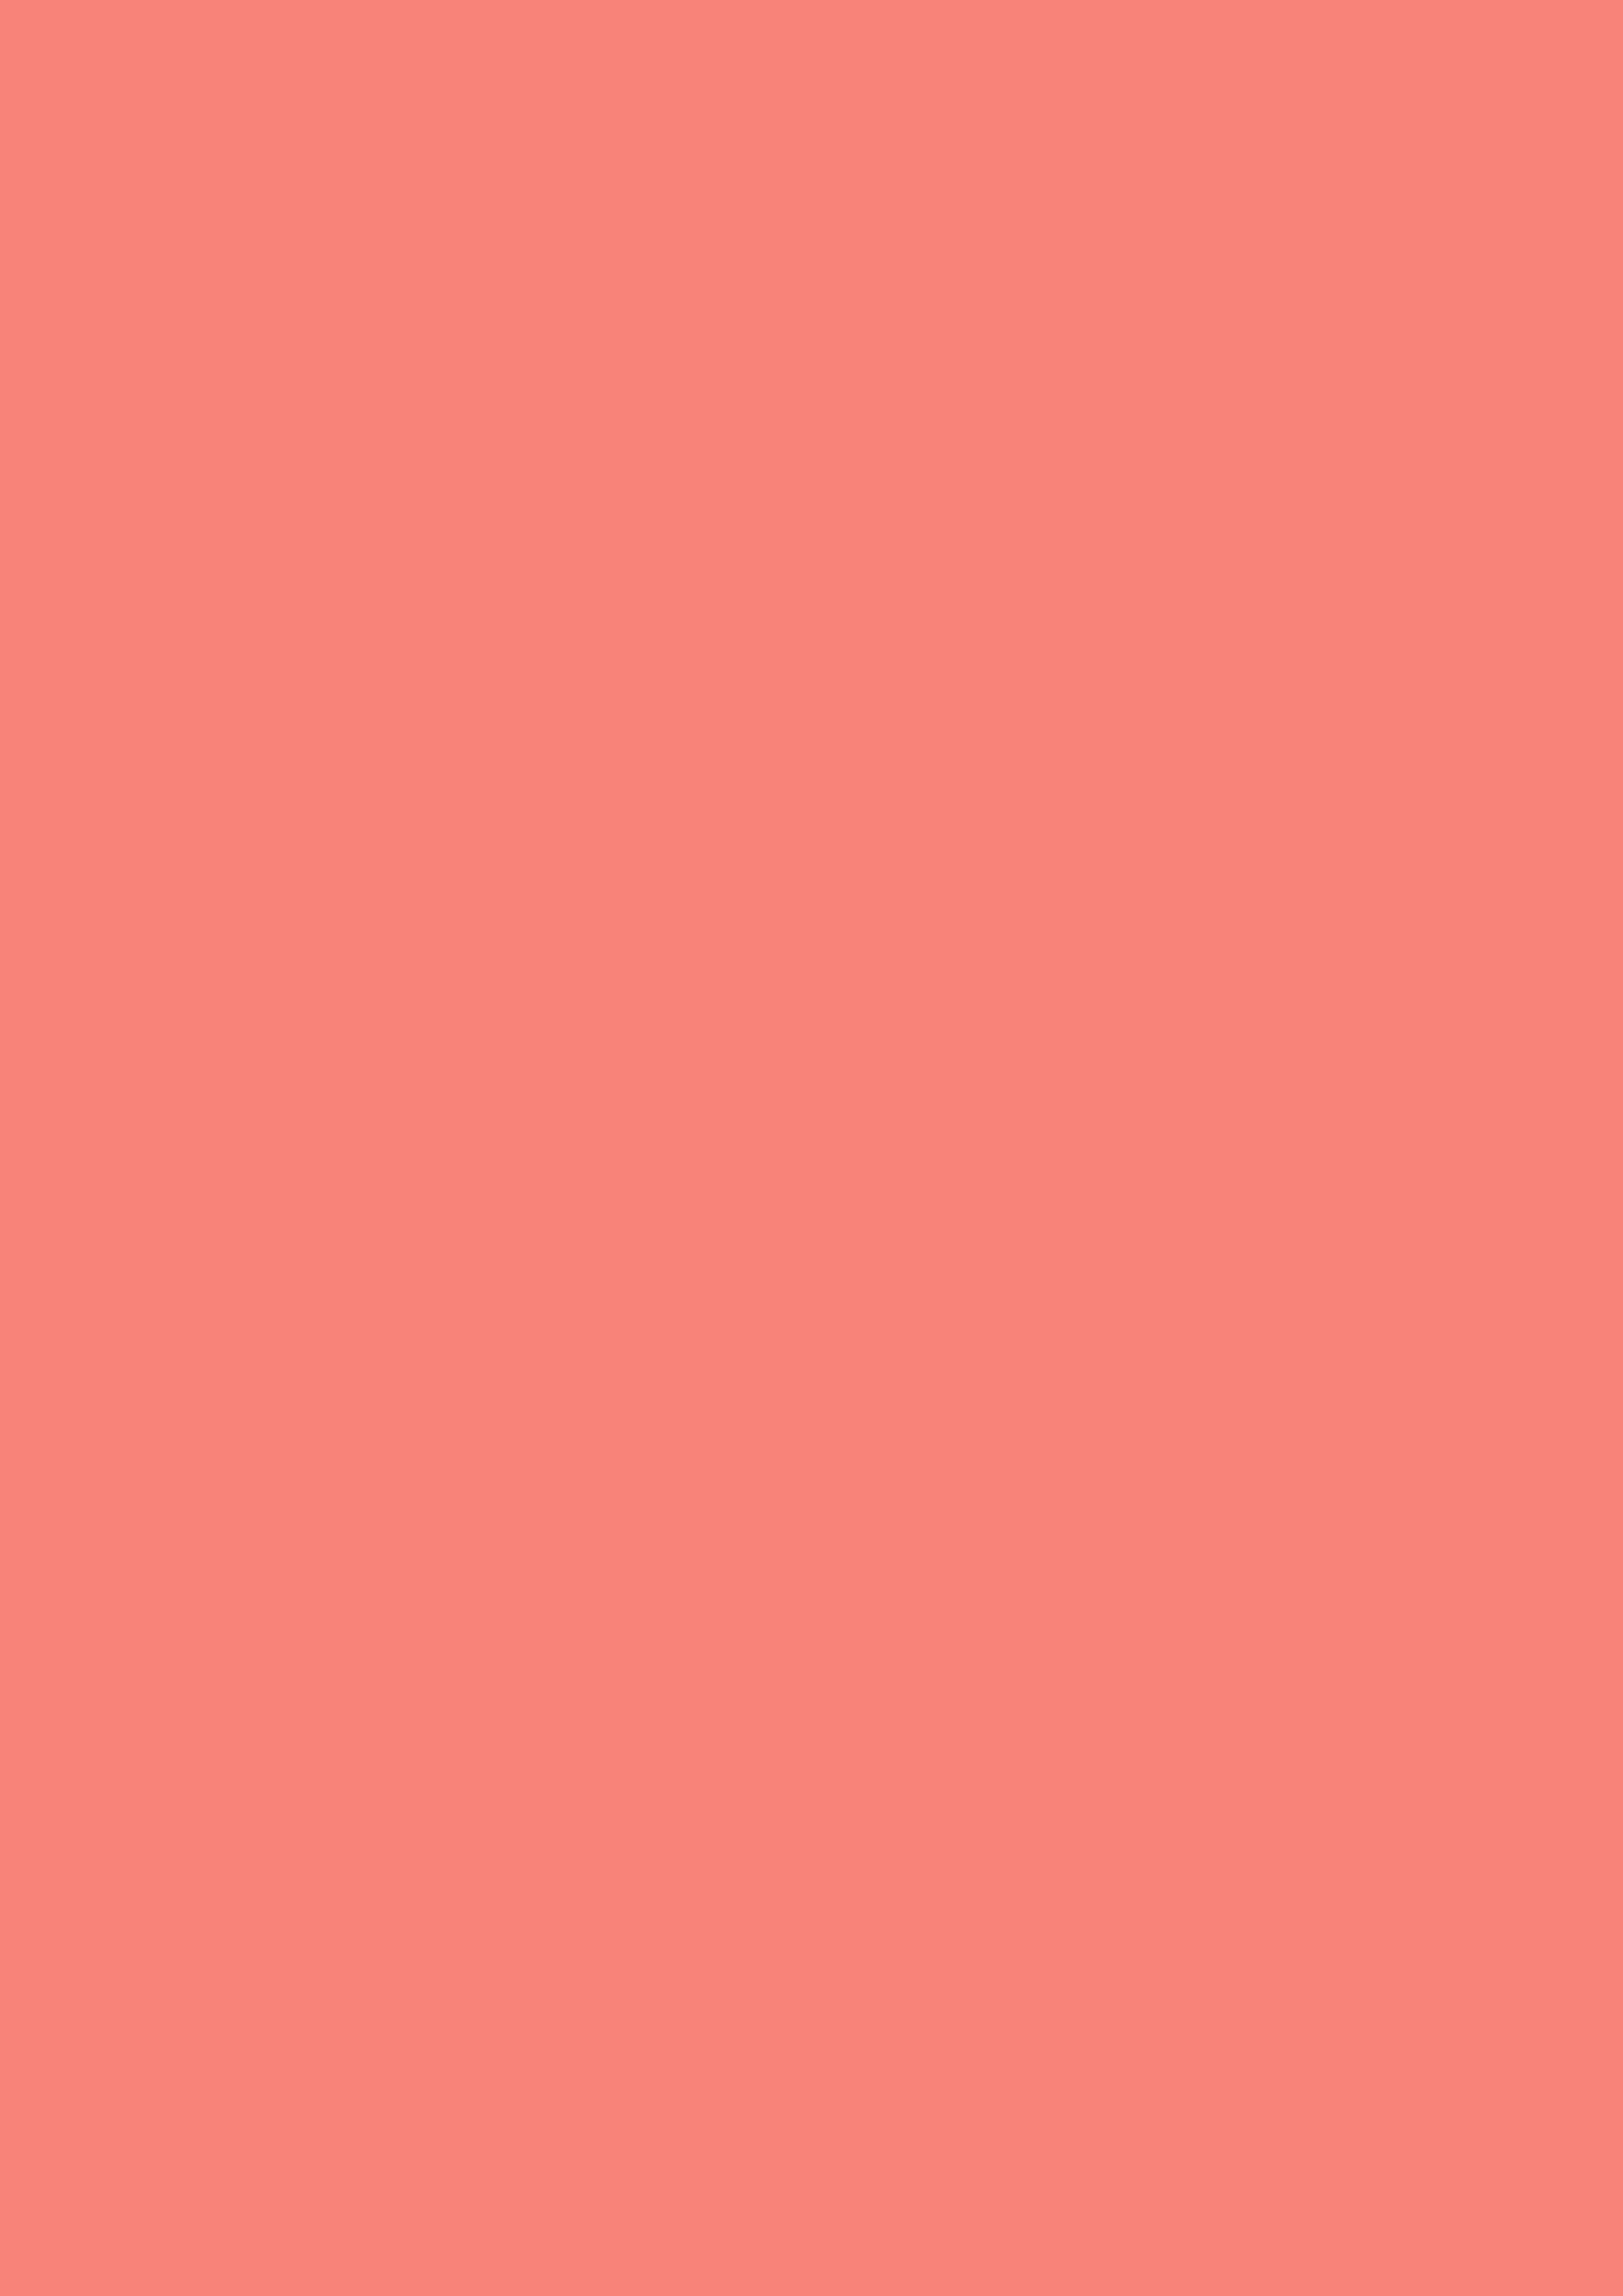 2480x3508 Congo Pink Solid Color Background